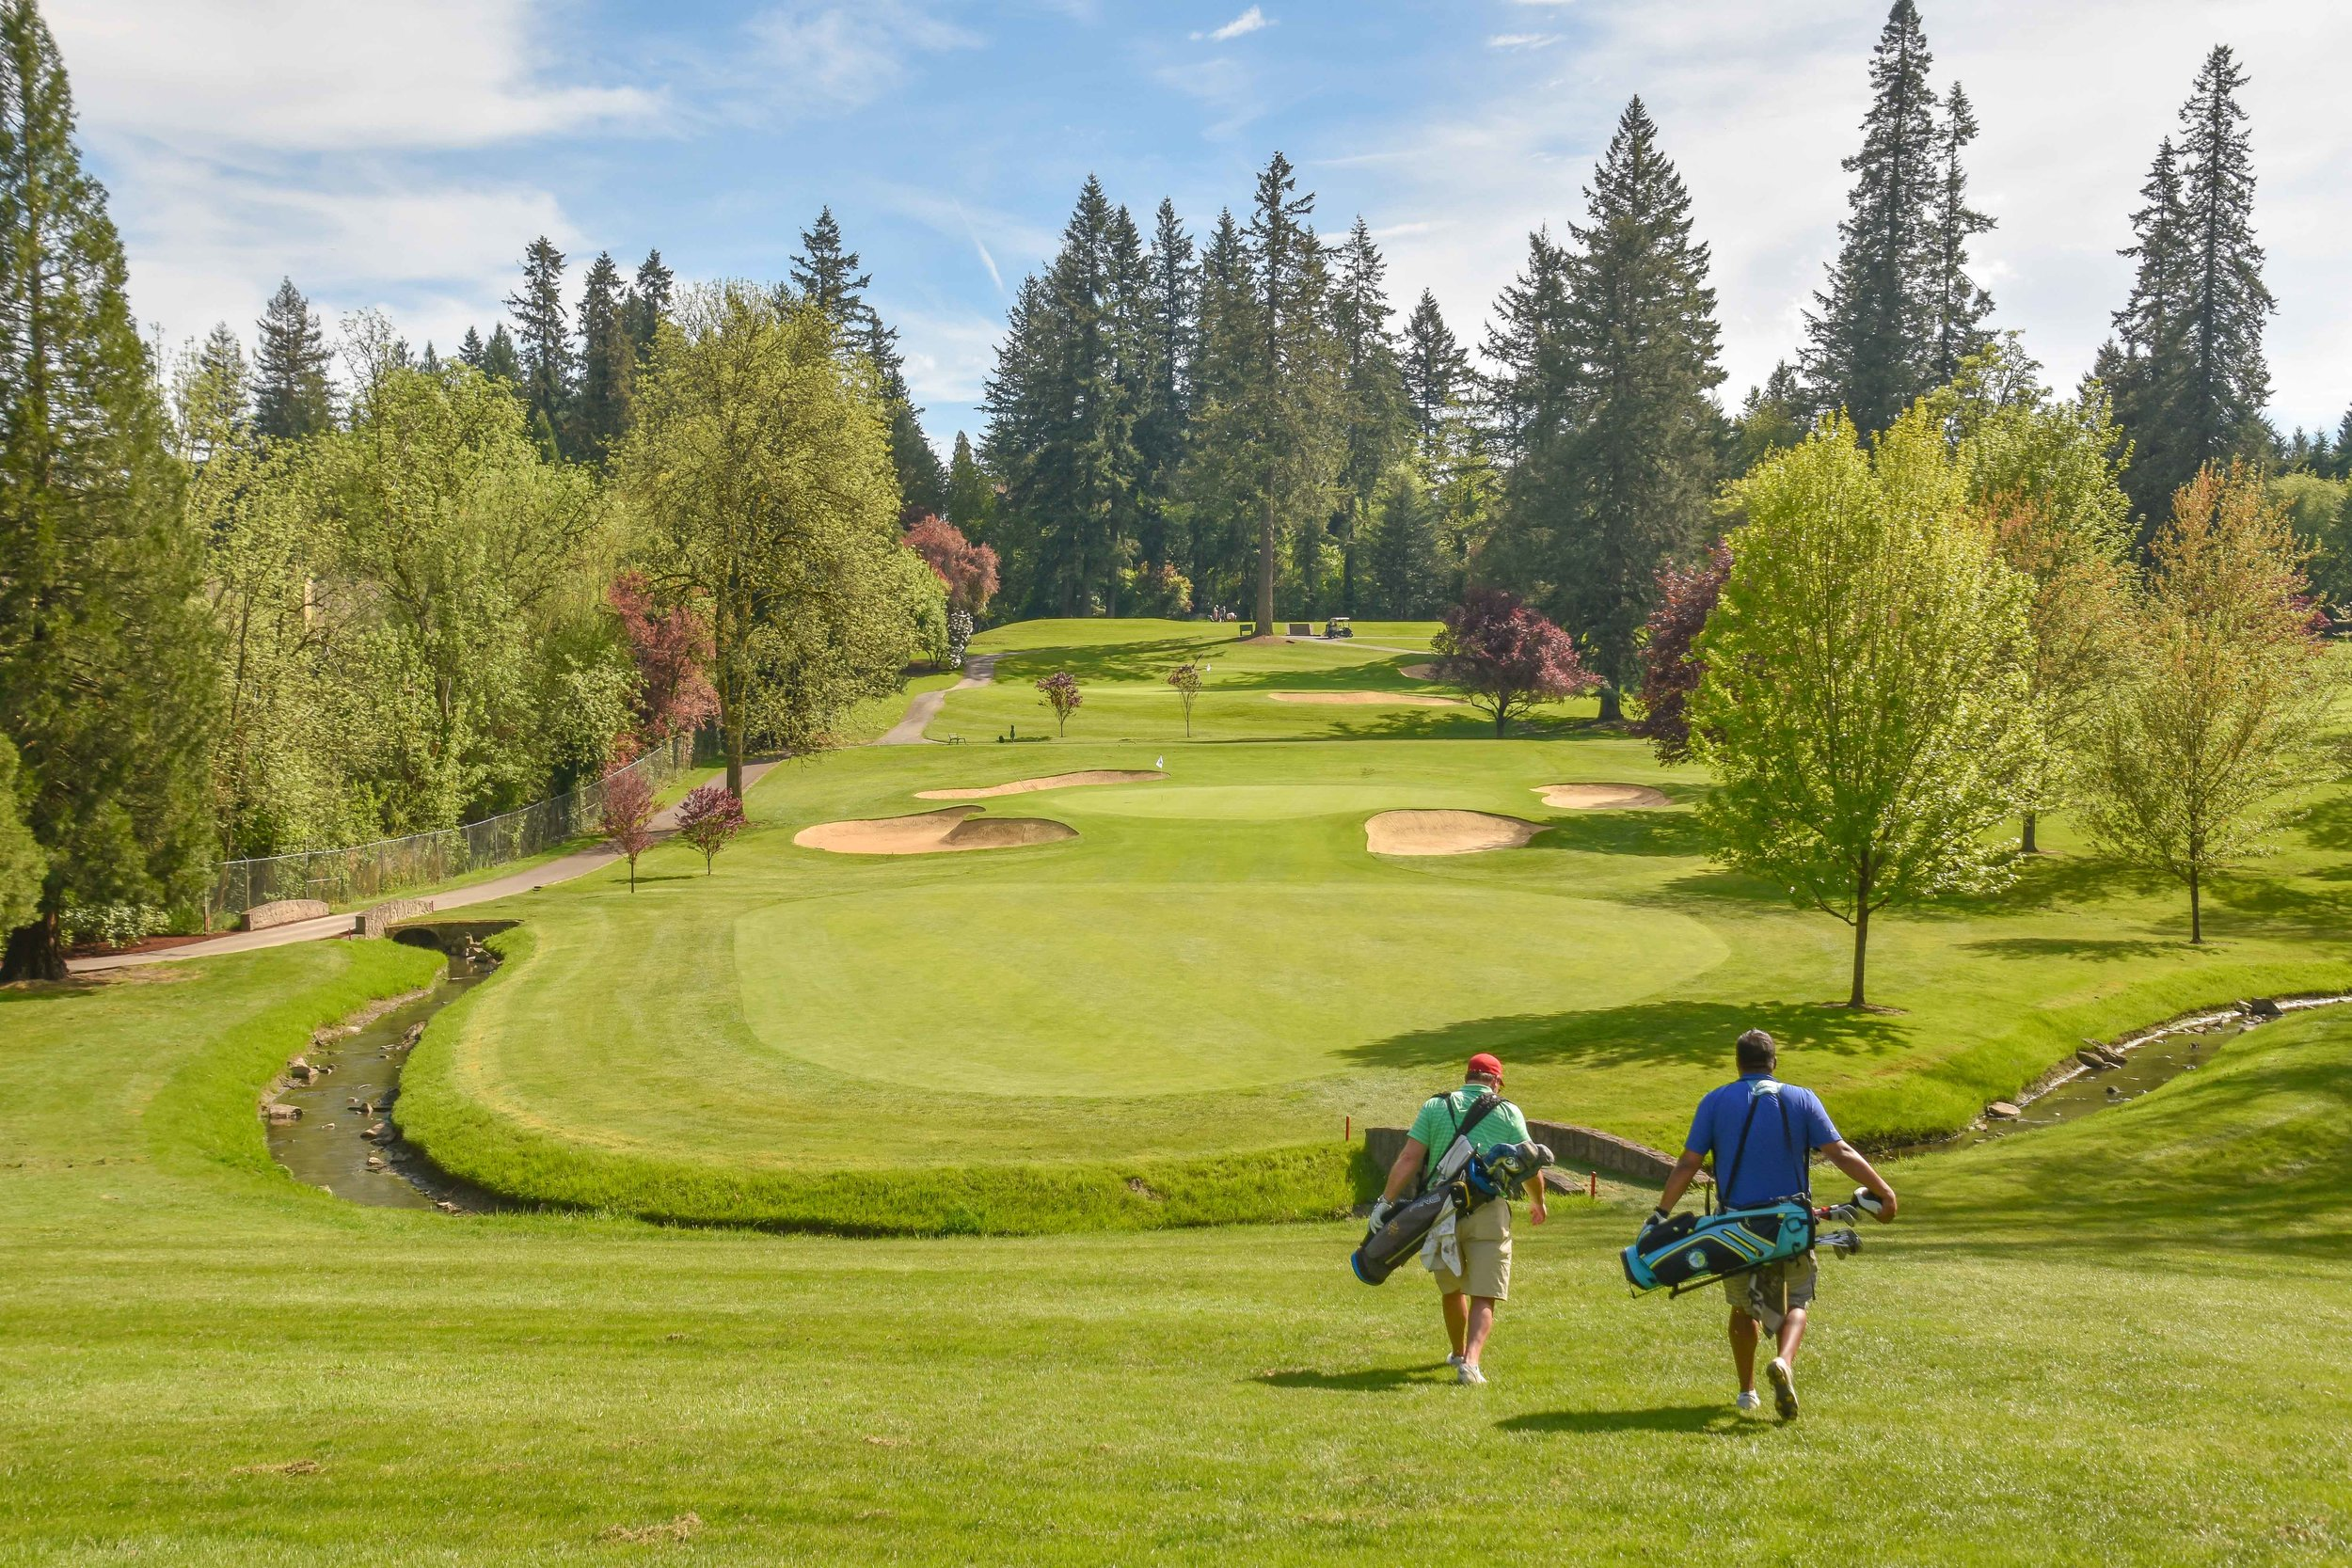 Portland Golf Club hosted the very first Eighty Club event.